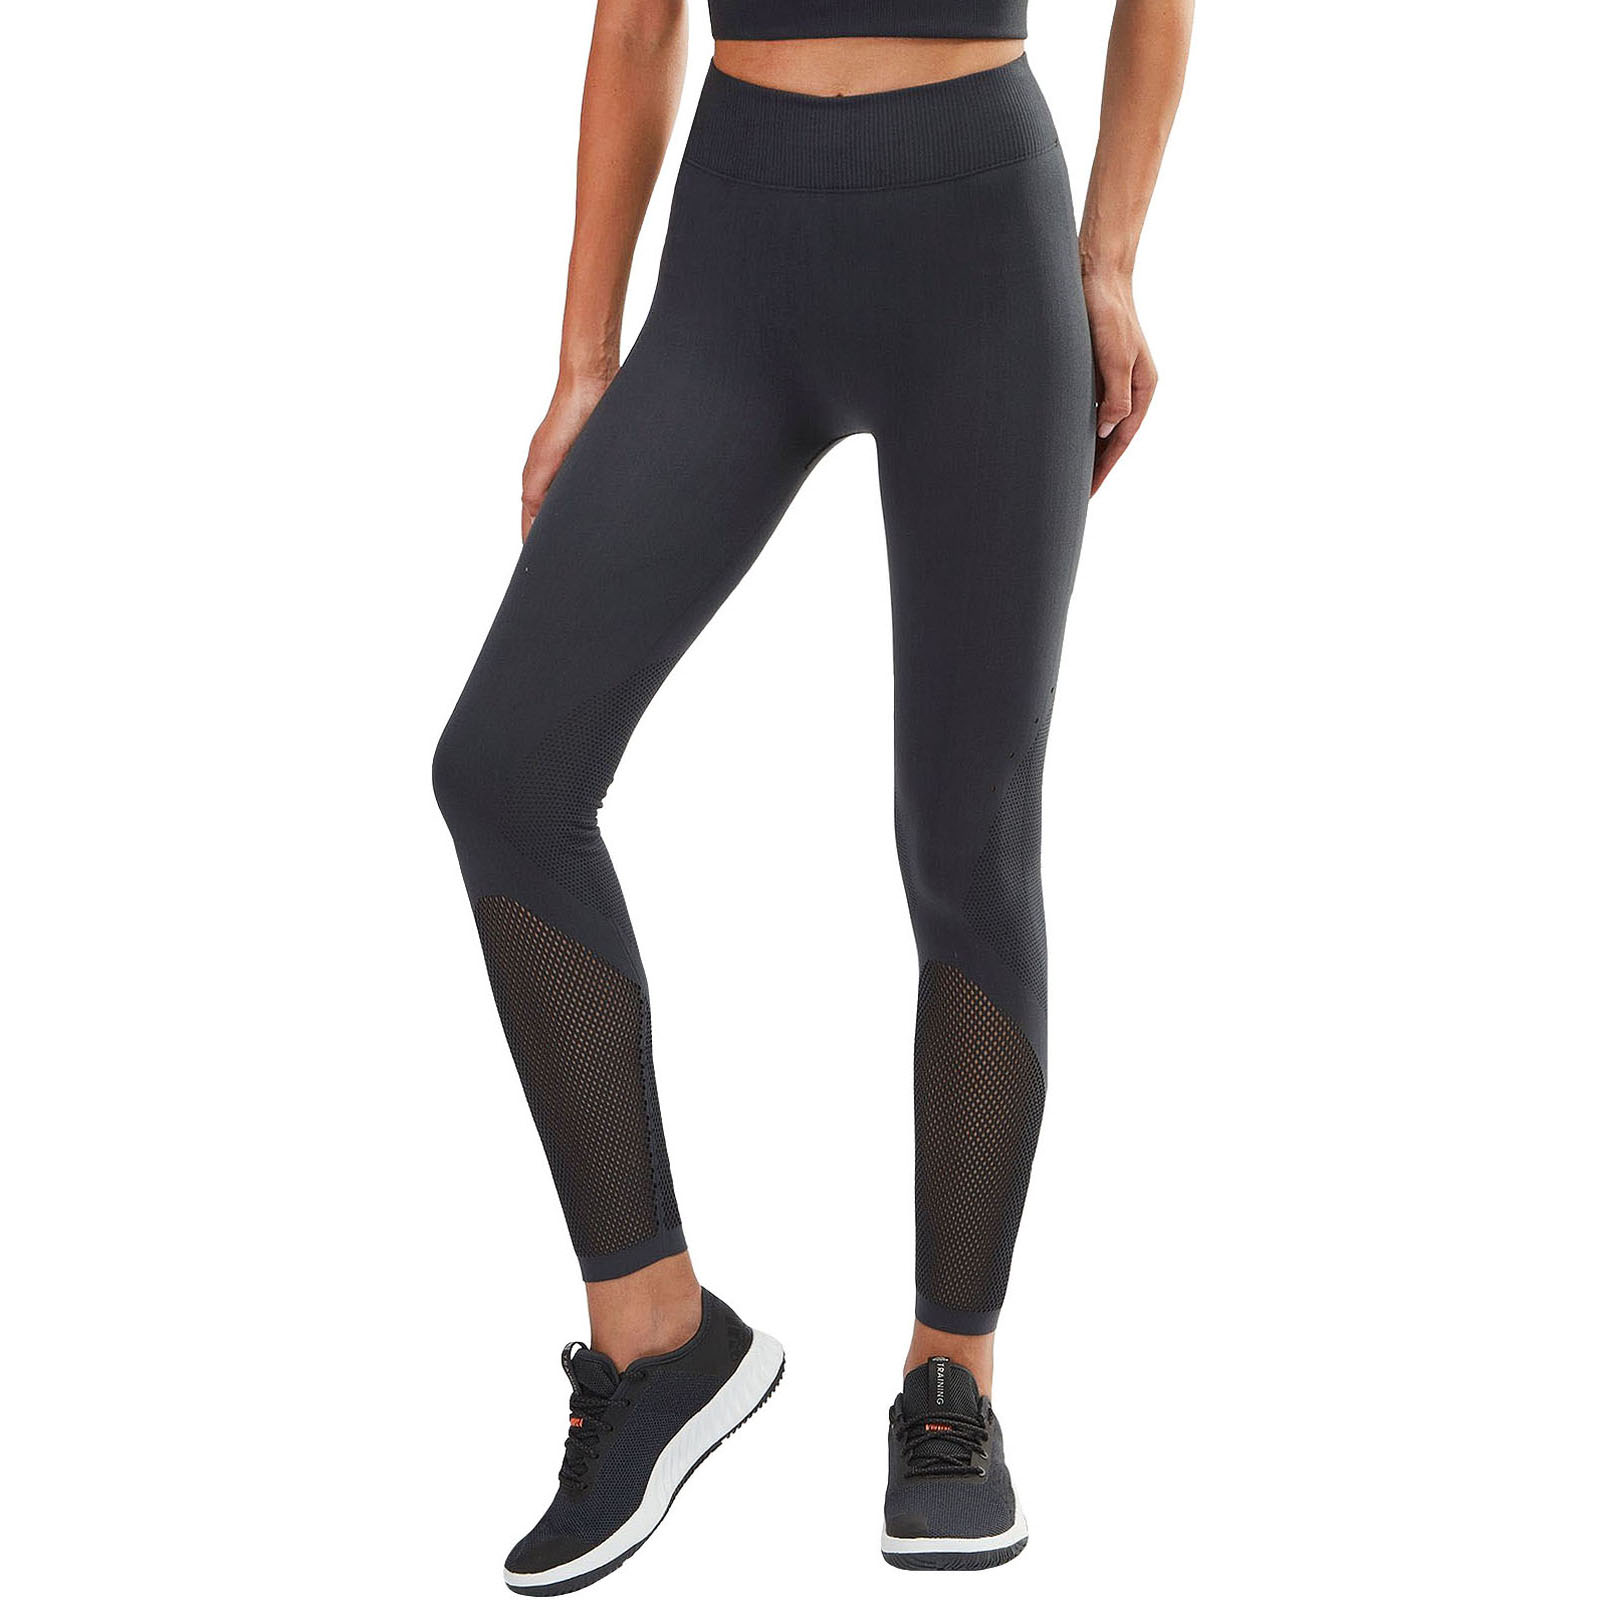 5425776f69c84 Details about adidas Performance Womens Warp Knit Full Length Climacool Gym  Tight Leggings - L